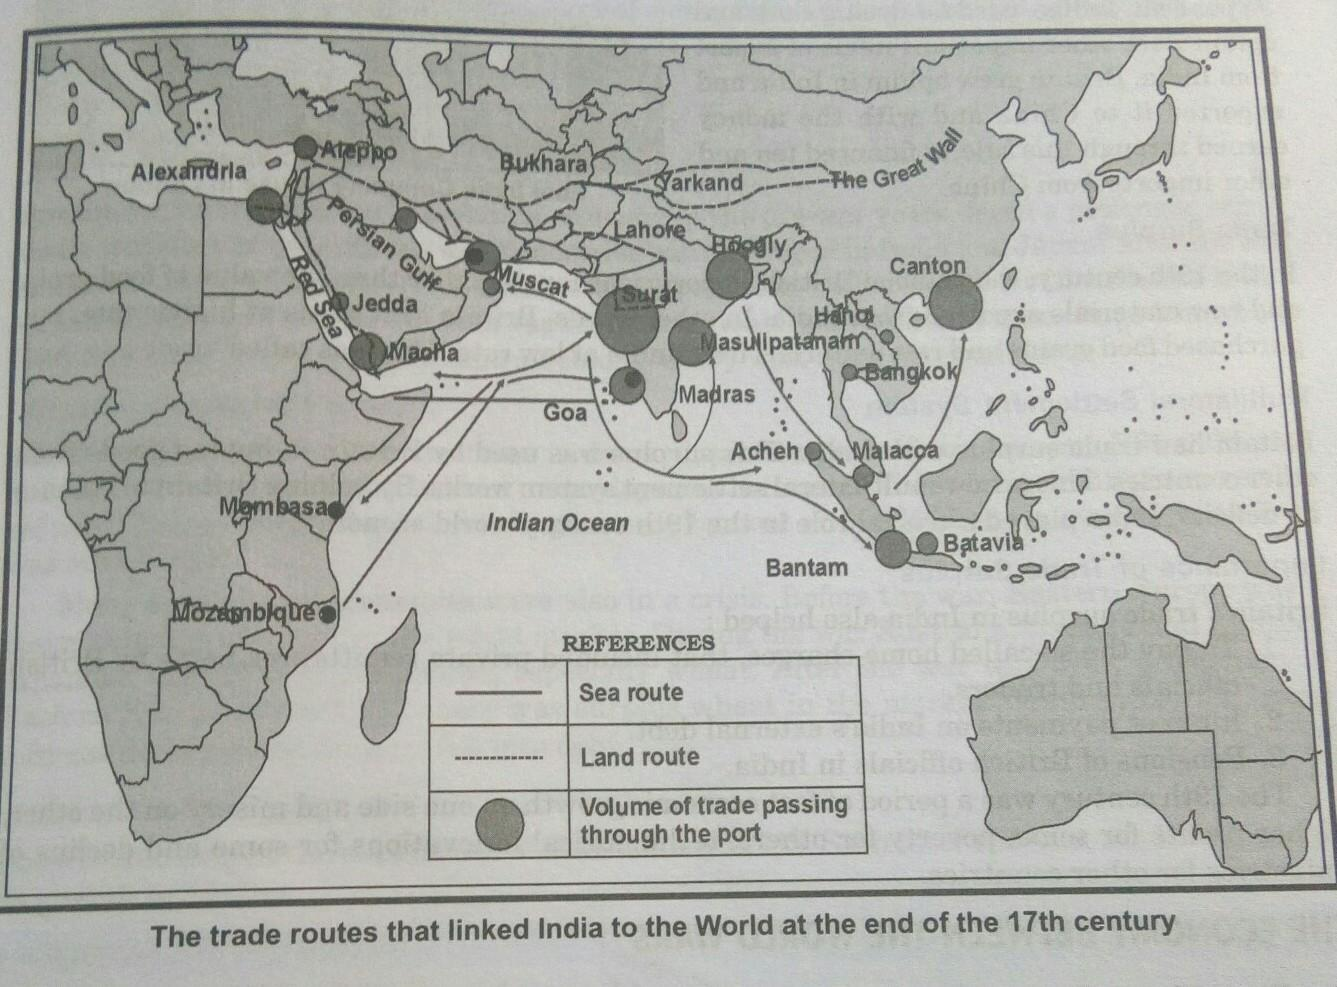 Which type of map is used to represent the trade route that ... on india china map, india trade route art, india road map, india terrain map, india travel map, india culture map, india british empire map, india africa map, india russia map,